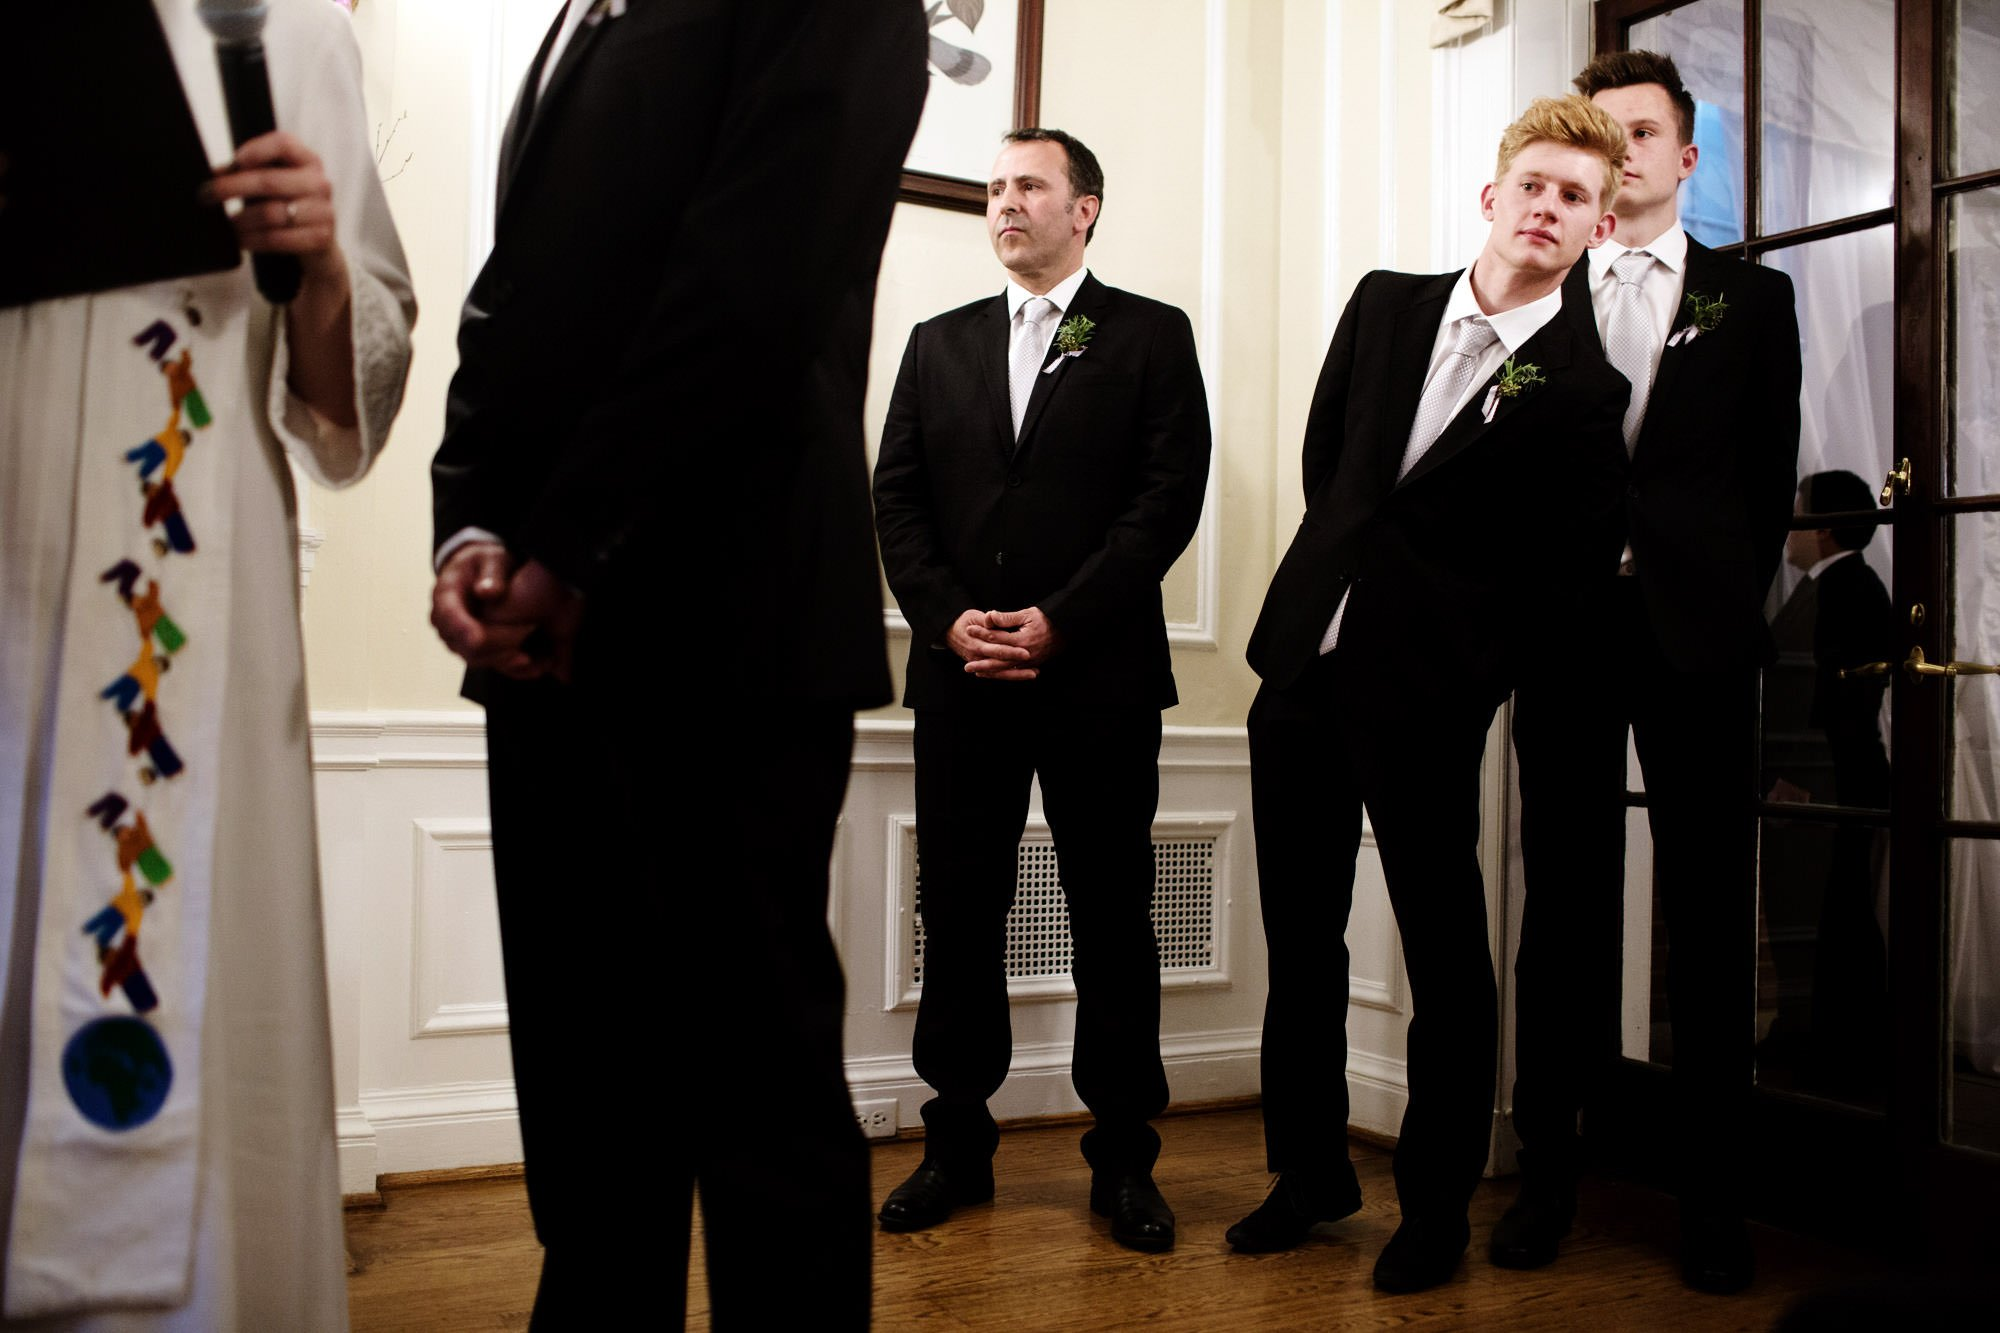 A groomsman watches the wedding ceremony.